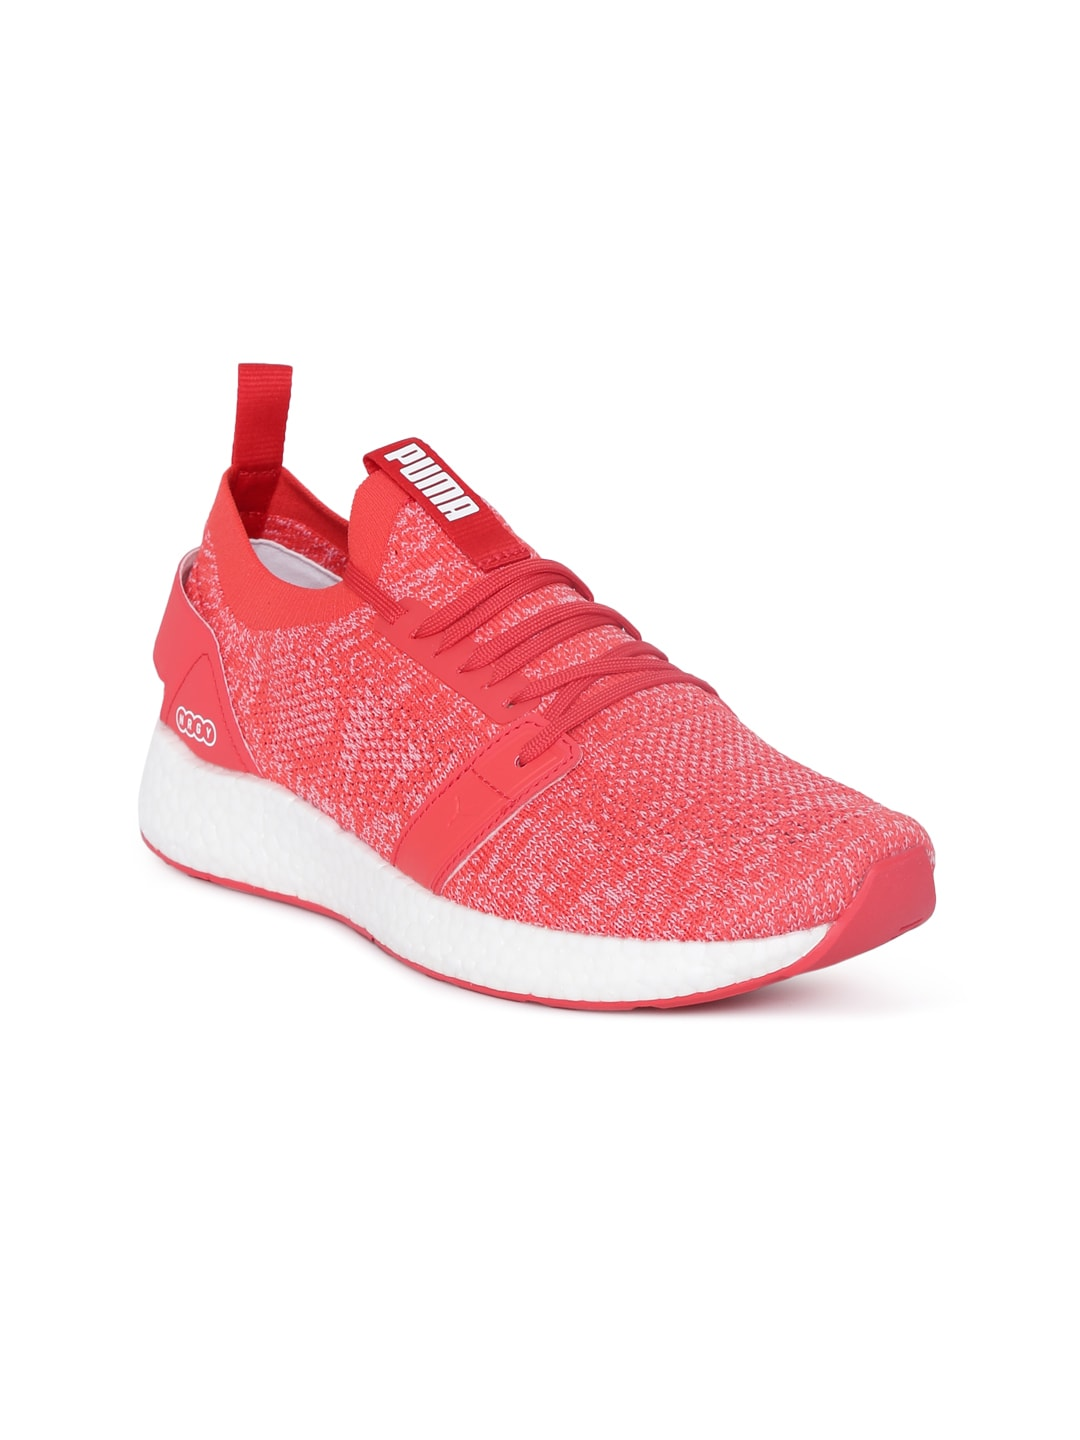 31baab66f2a Red Sports Shoes - Buy Red Sports Shoes online in India